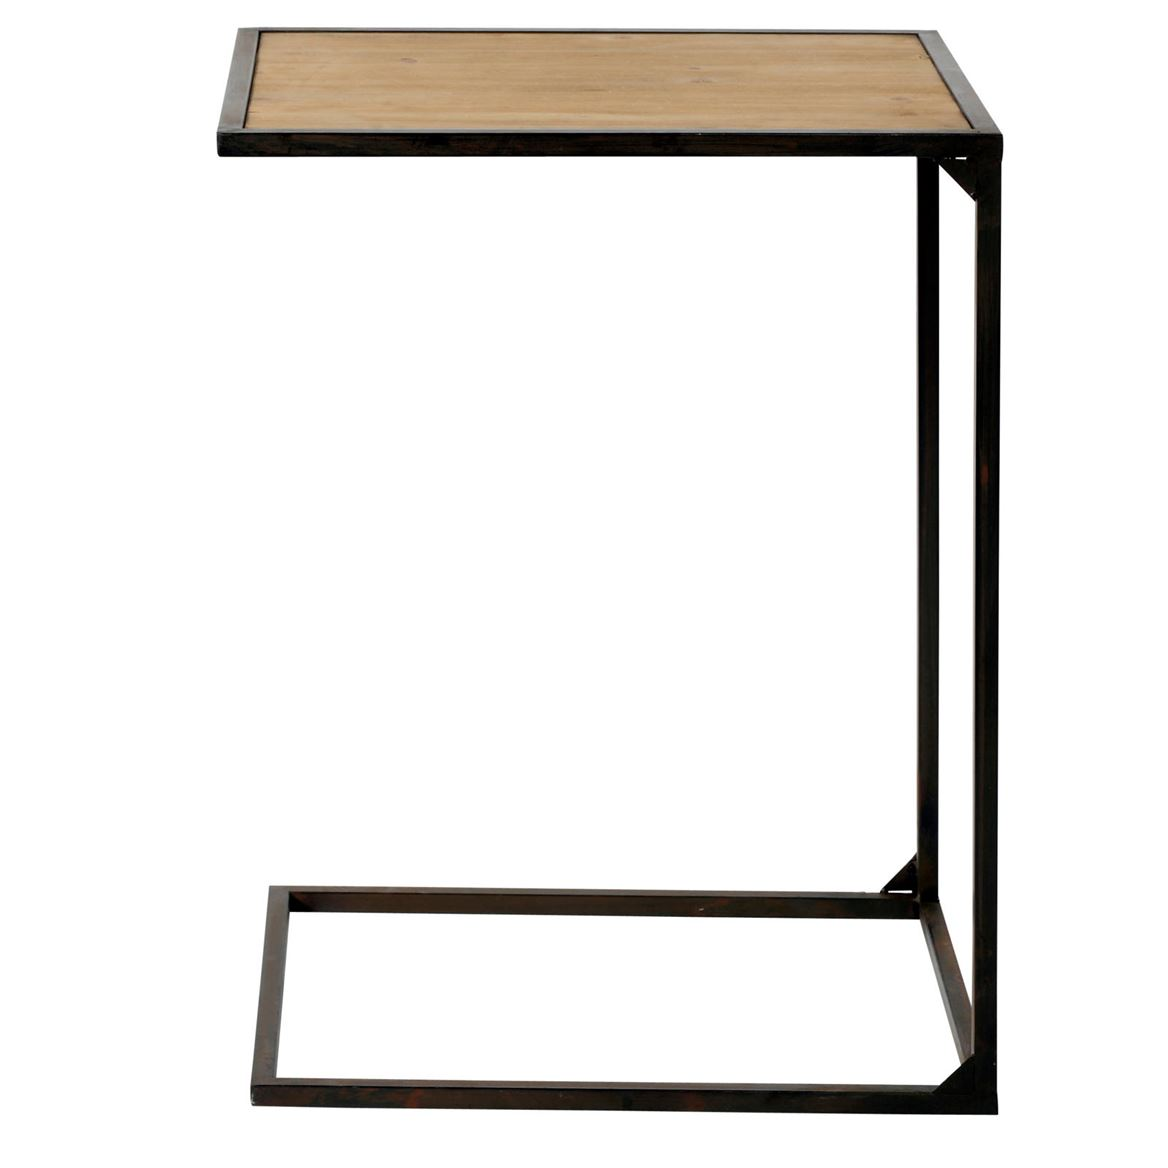 EDGE Table d'appoint_584101_1.jpg